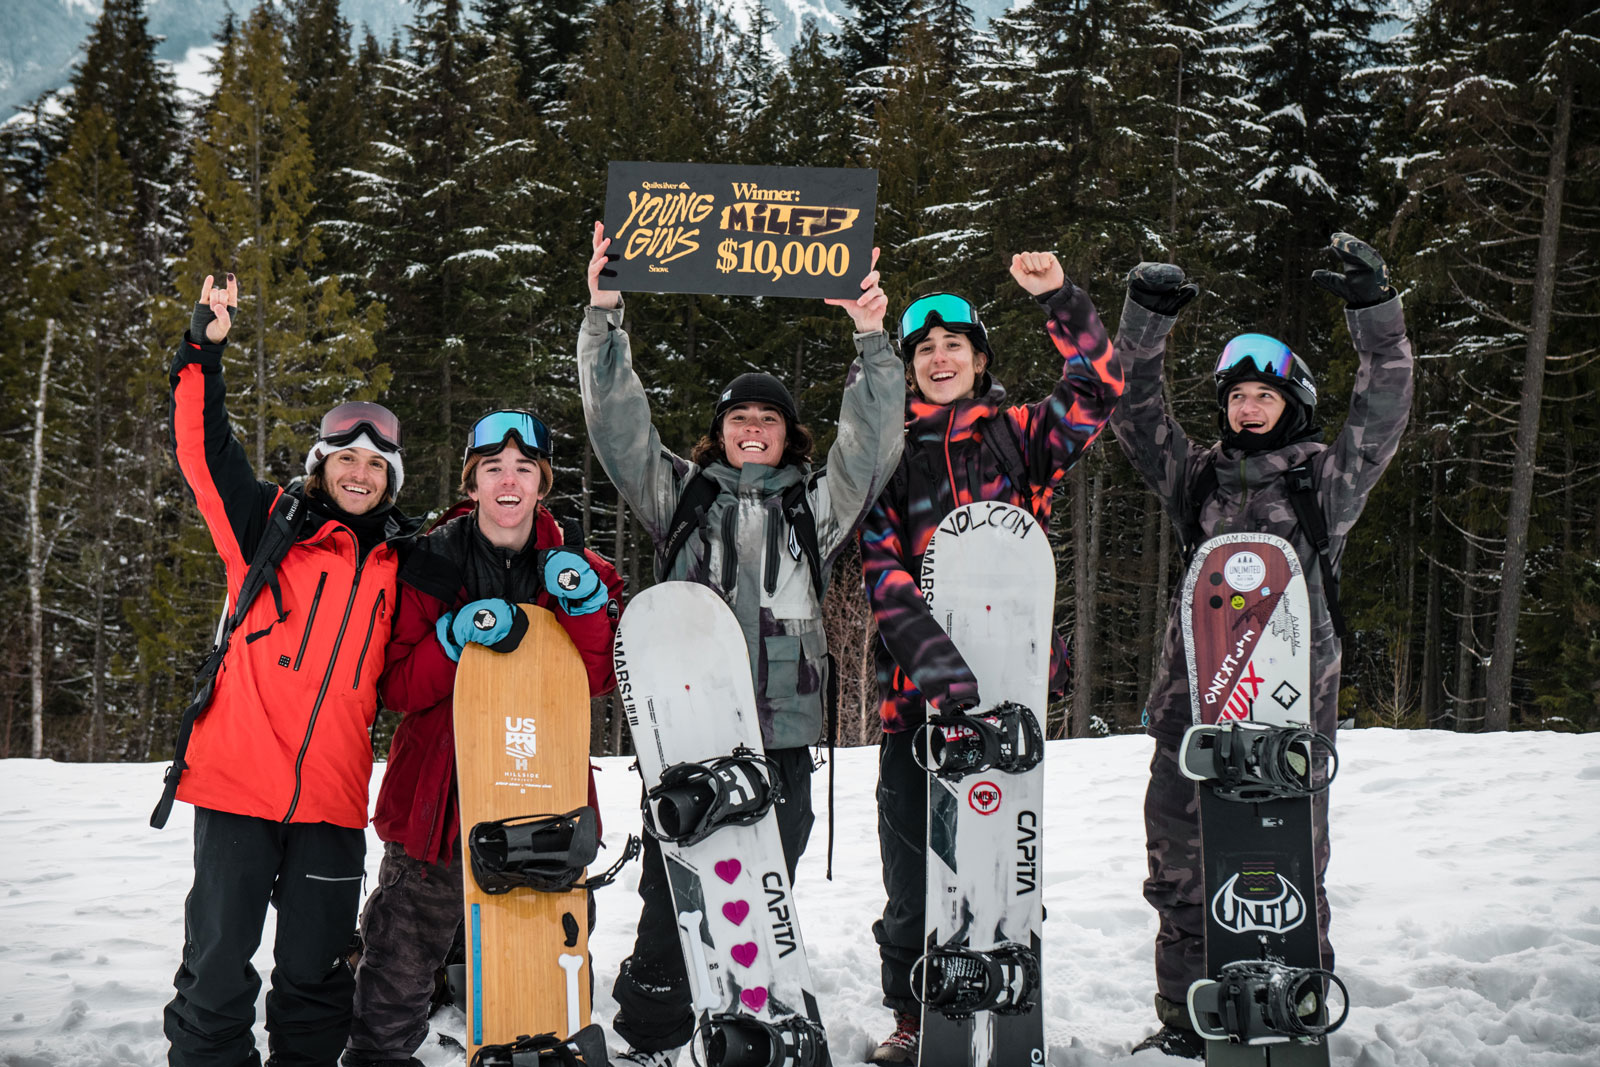 Young Guns Snow winner Miles Falcon, Austen Sweetin and other competitors.